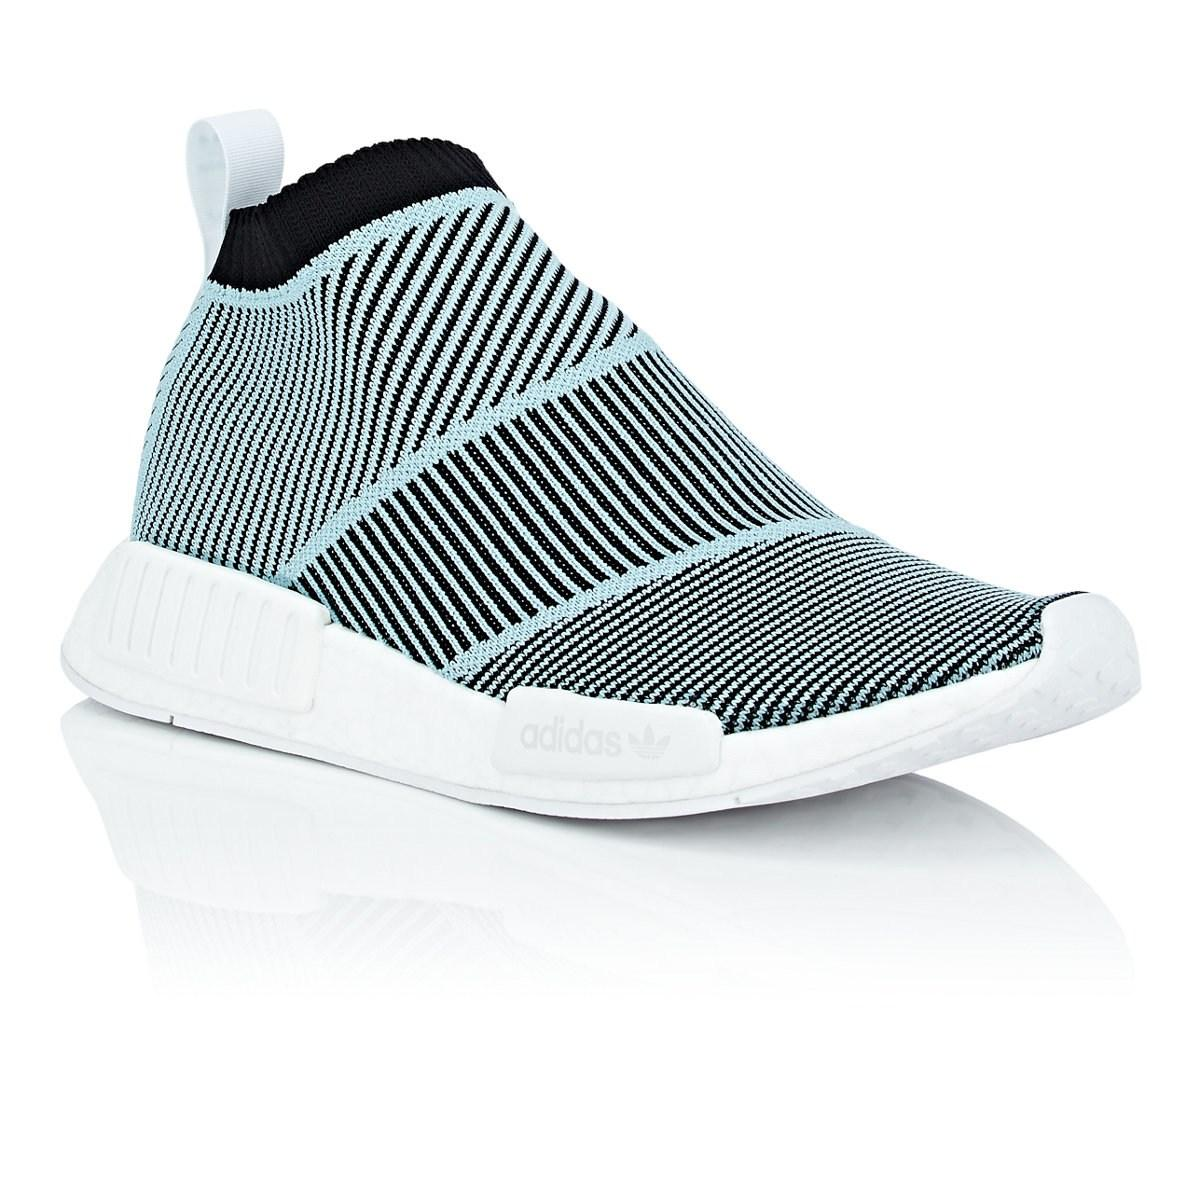 396e7492beee7 Adidas - Blue Nmd Cs1 Parley Primeknit Sneakers for Men - Lyst. View  fullscreen